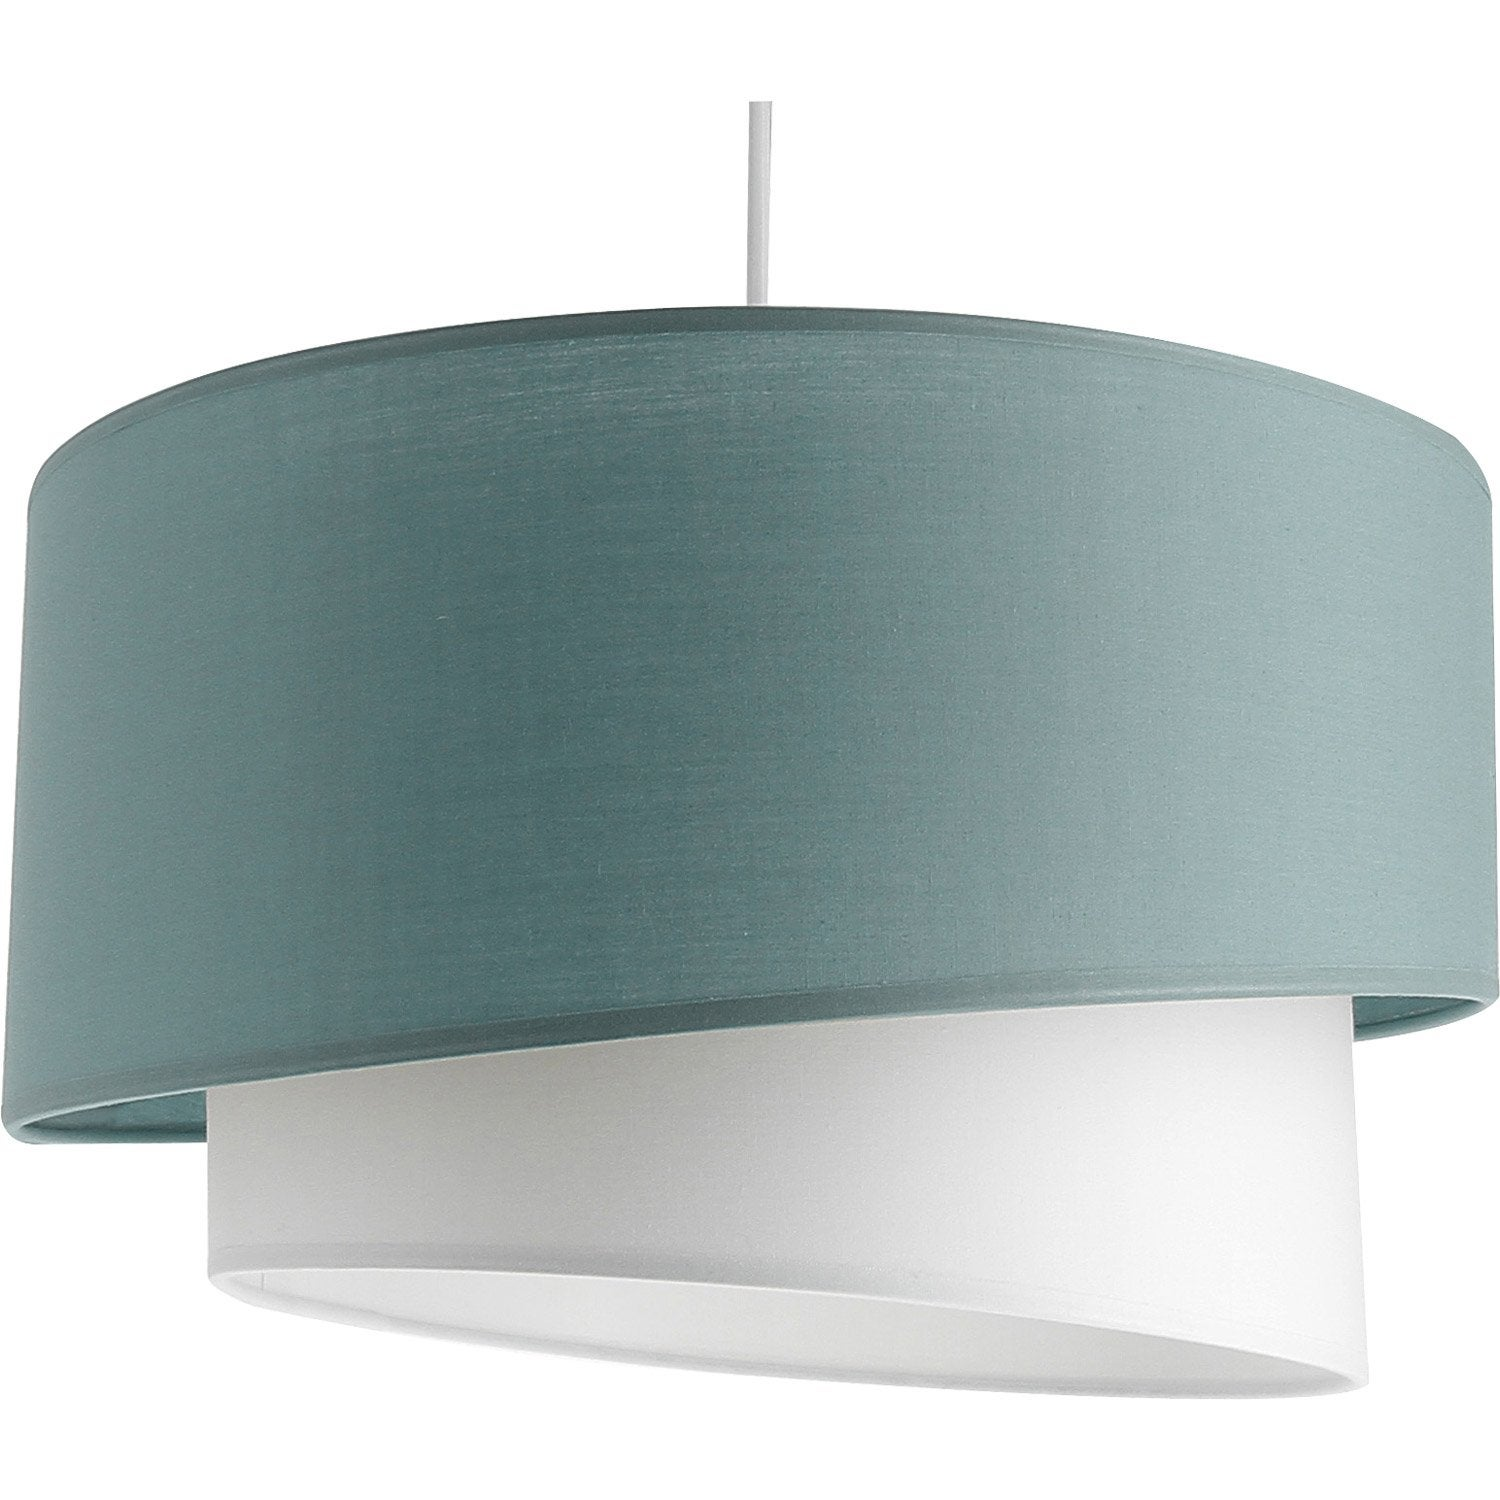 Suspension moderne ionos coton bleu baltique n 3 1 x 60 w for Suspension bleu